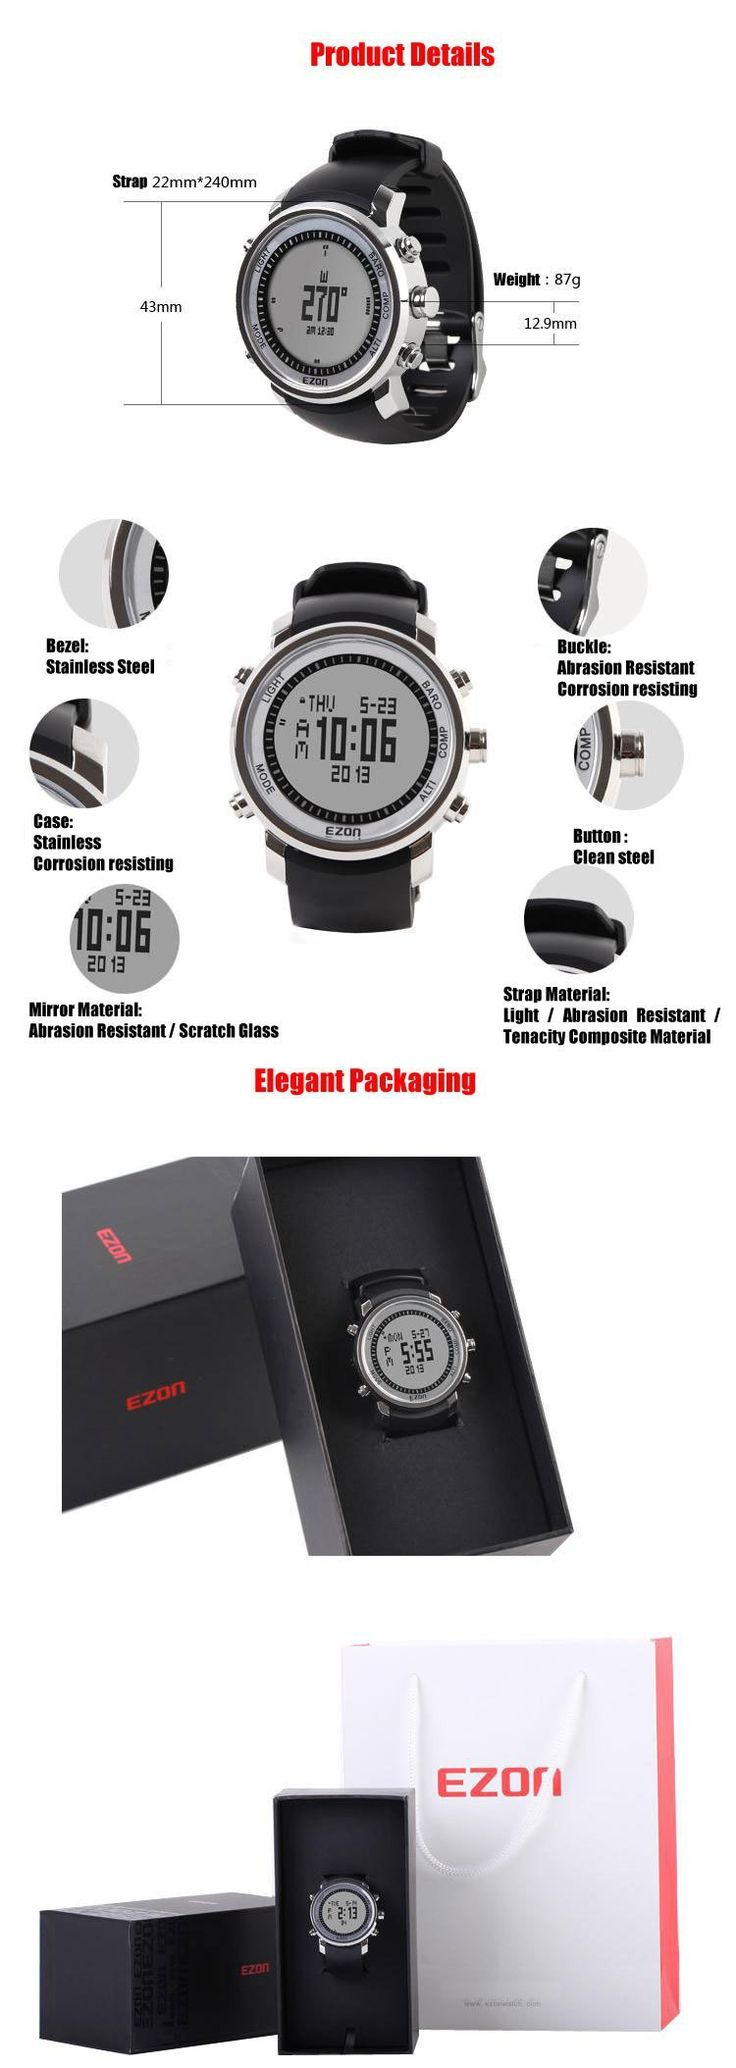 This is a multi-functionalwatch combines altimeter, barometer, thermometer and electronic compass, and alarm. Our watch can measure altitude, pressure, temperature and bearing, and can display time, calendar and the time of 48 cities in 24 time zones, also can set one city time as current time directly.   www.e-winkyz.com